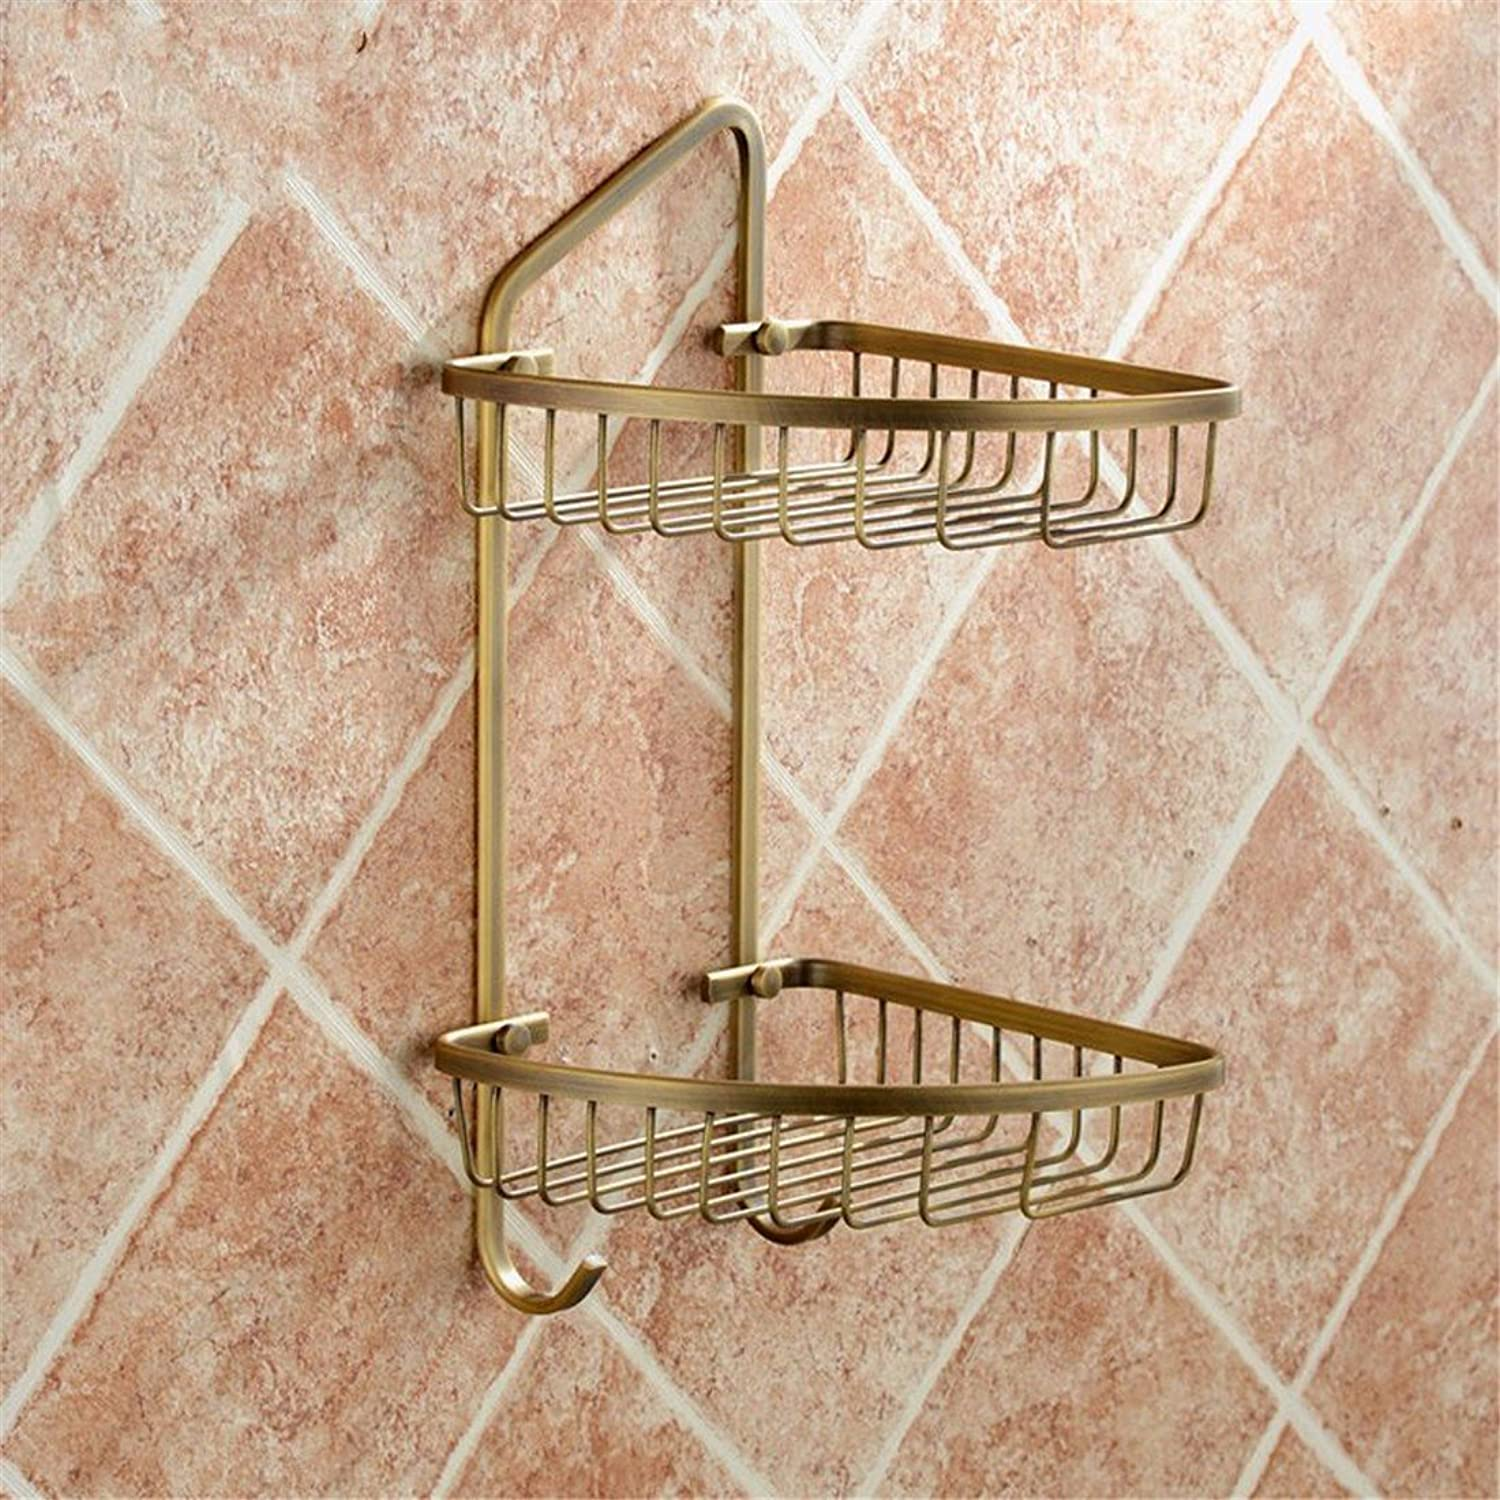 Continental copper antique carved bathroom accessories pack of toilet paper holder Toilet brush holder, the built-in basket 2 B